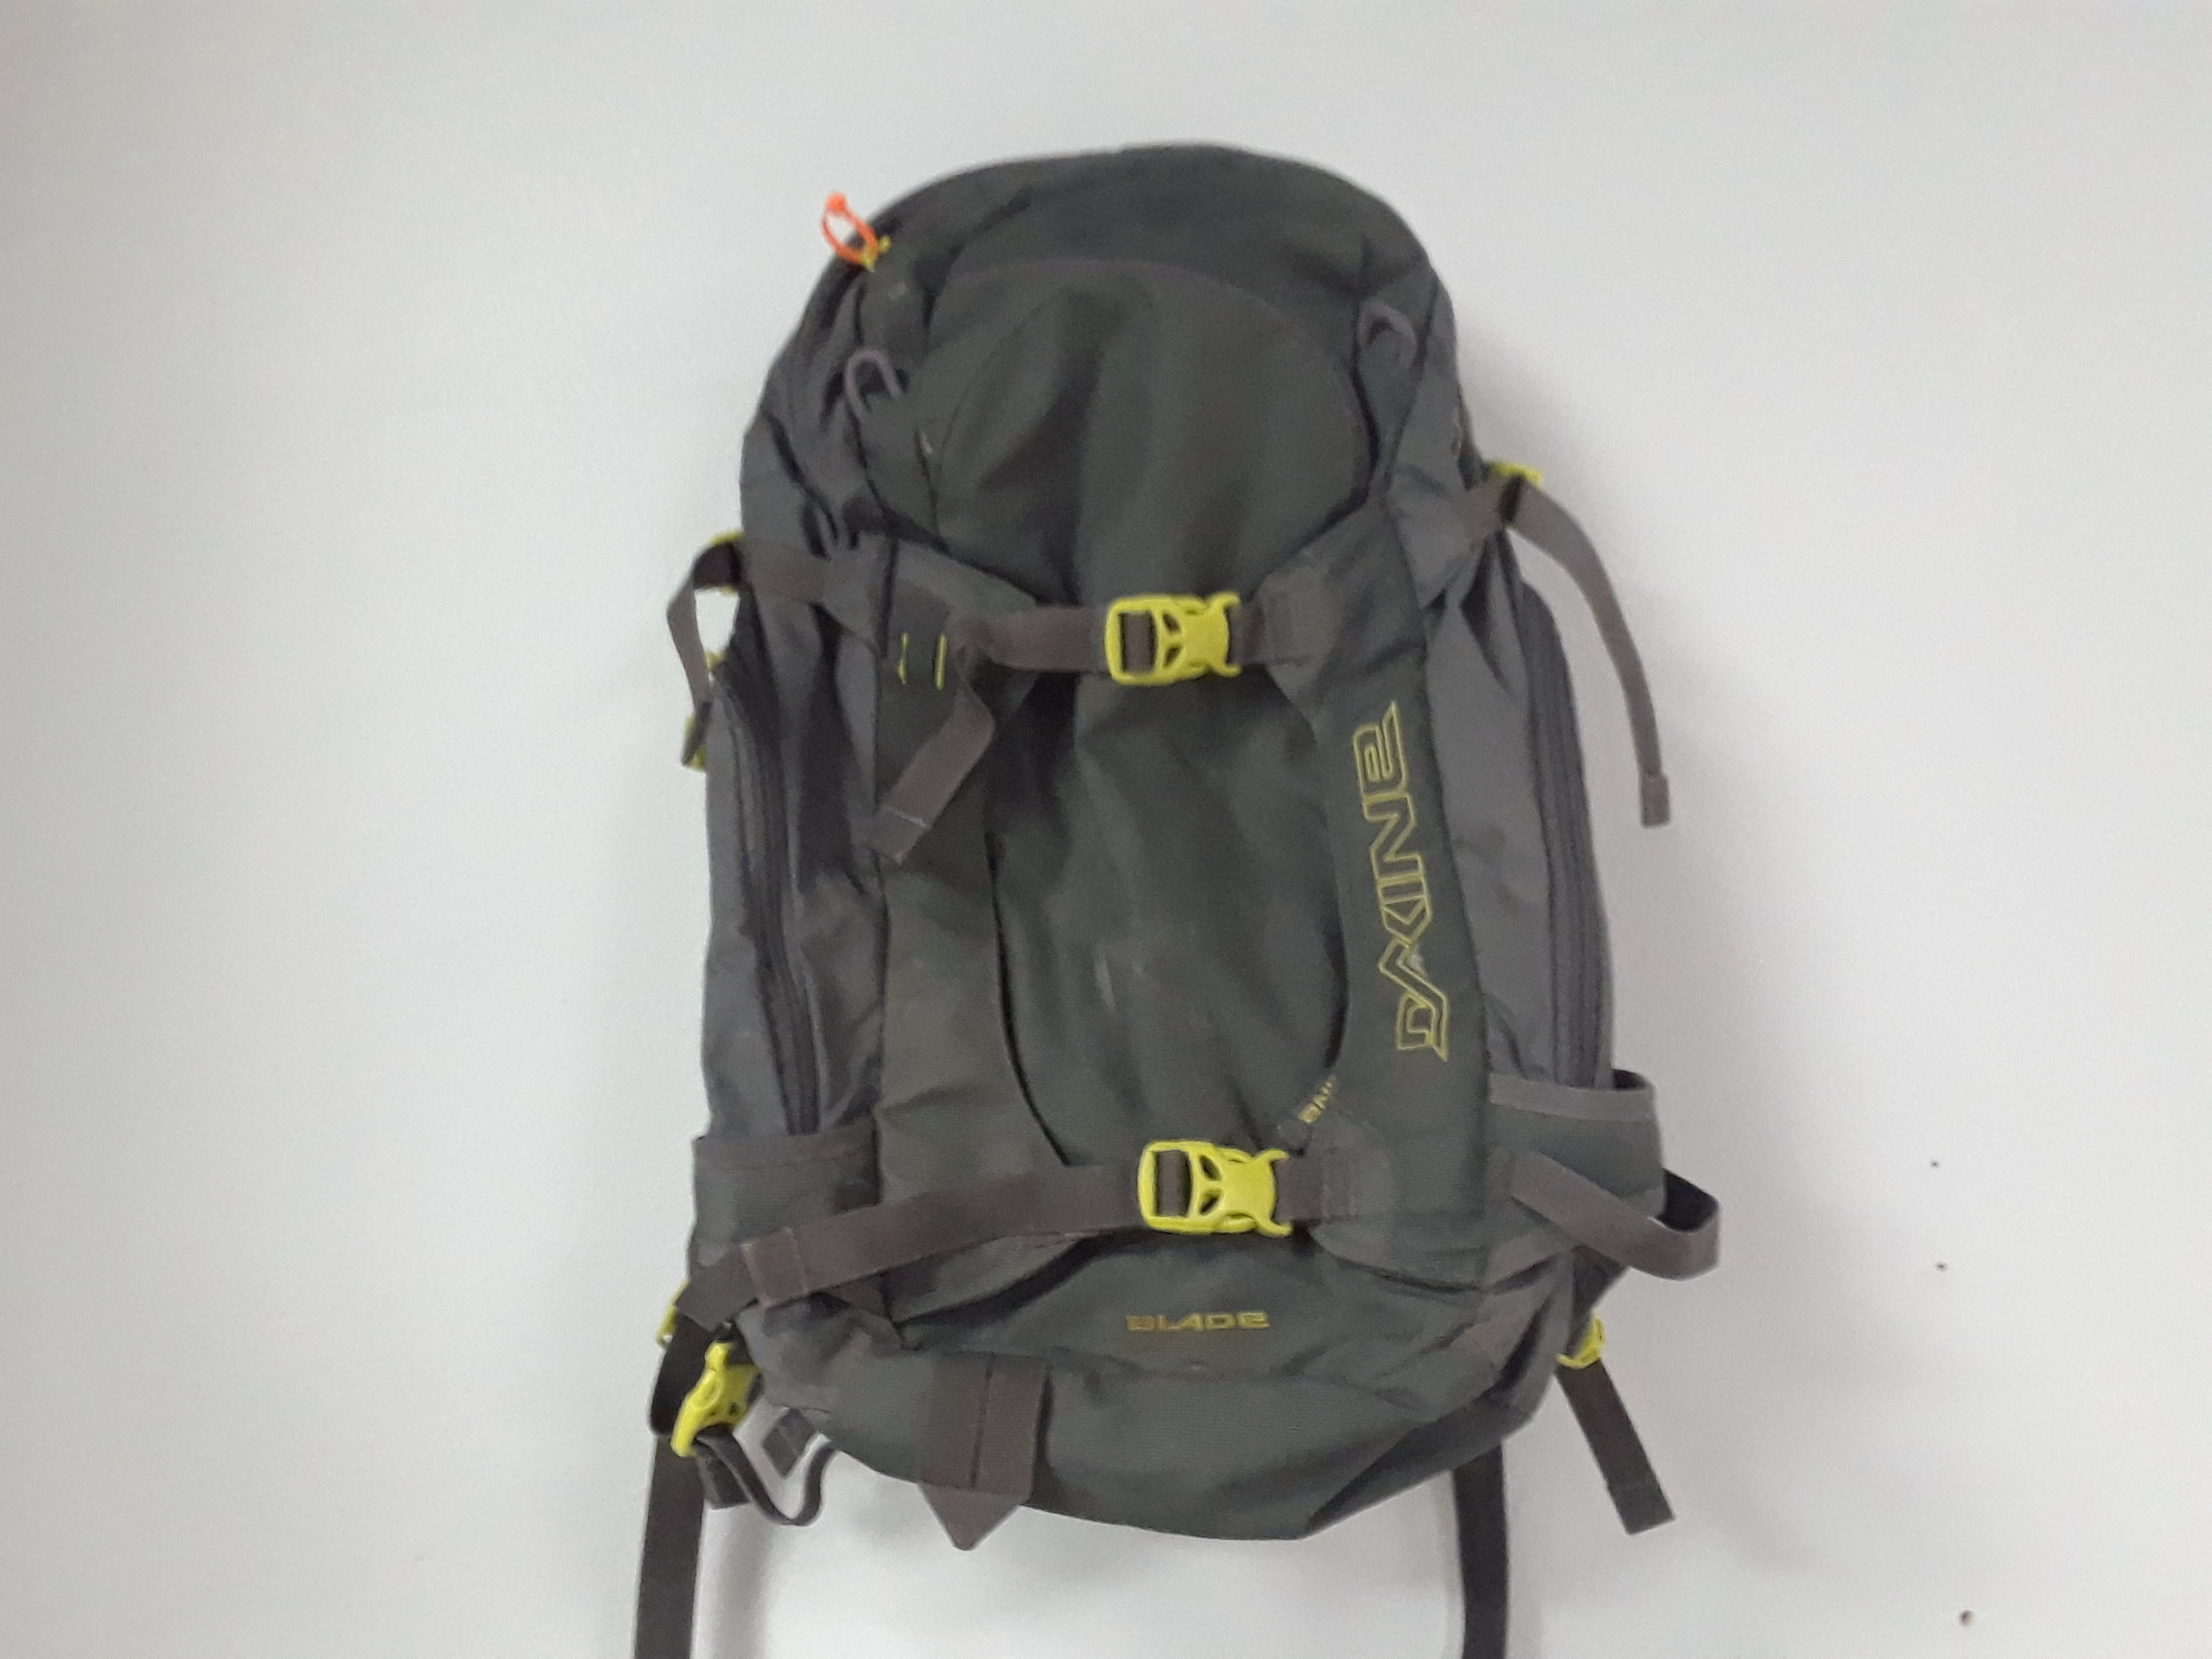 Tired of a messy, unorganized backpack? Here's your solution. The 38L Dakine Blade can carry a board and skis in multiple positions, has dedicated shovel/probe/ice axe pockets, and has back entry capabilities. The MSRP is listed at $165 but we have you covered at $79.